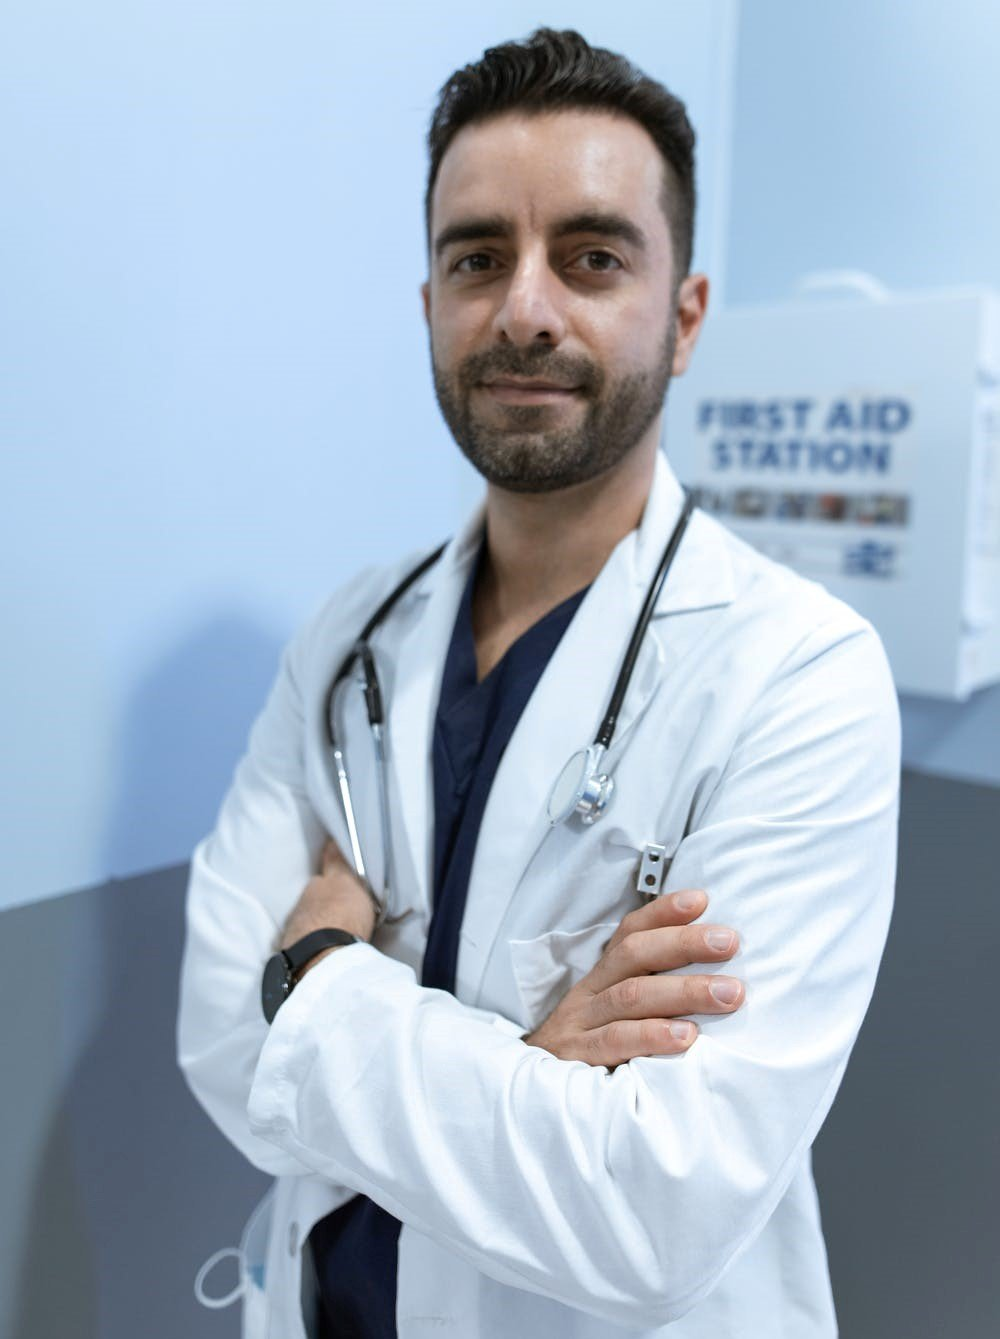 I'm going to be a surgeon | Source: Pexels